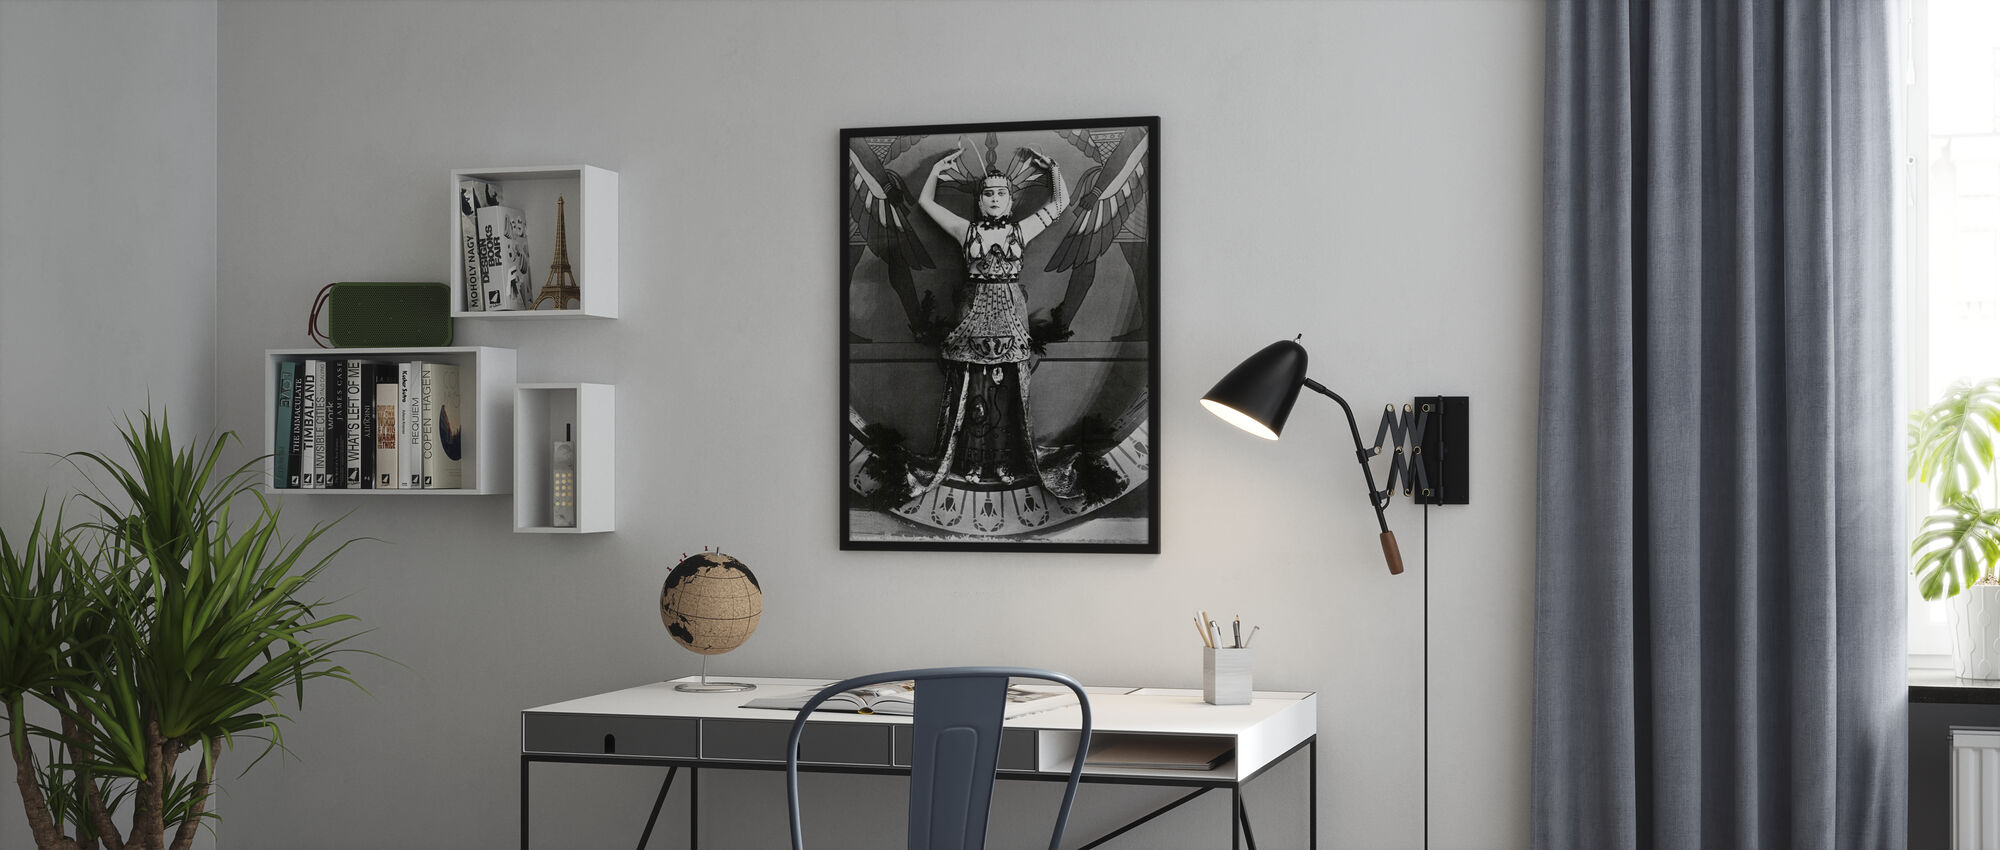 Theda Bara in Cleopatra - Poster - Office